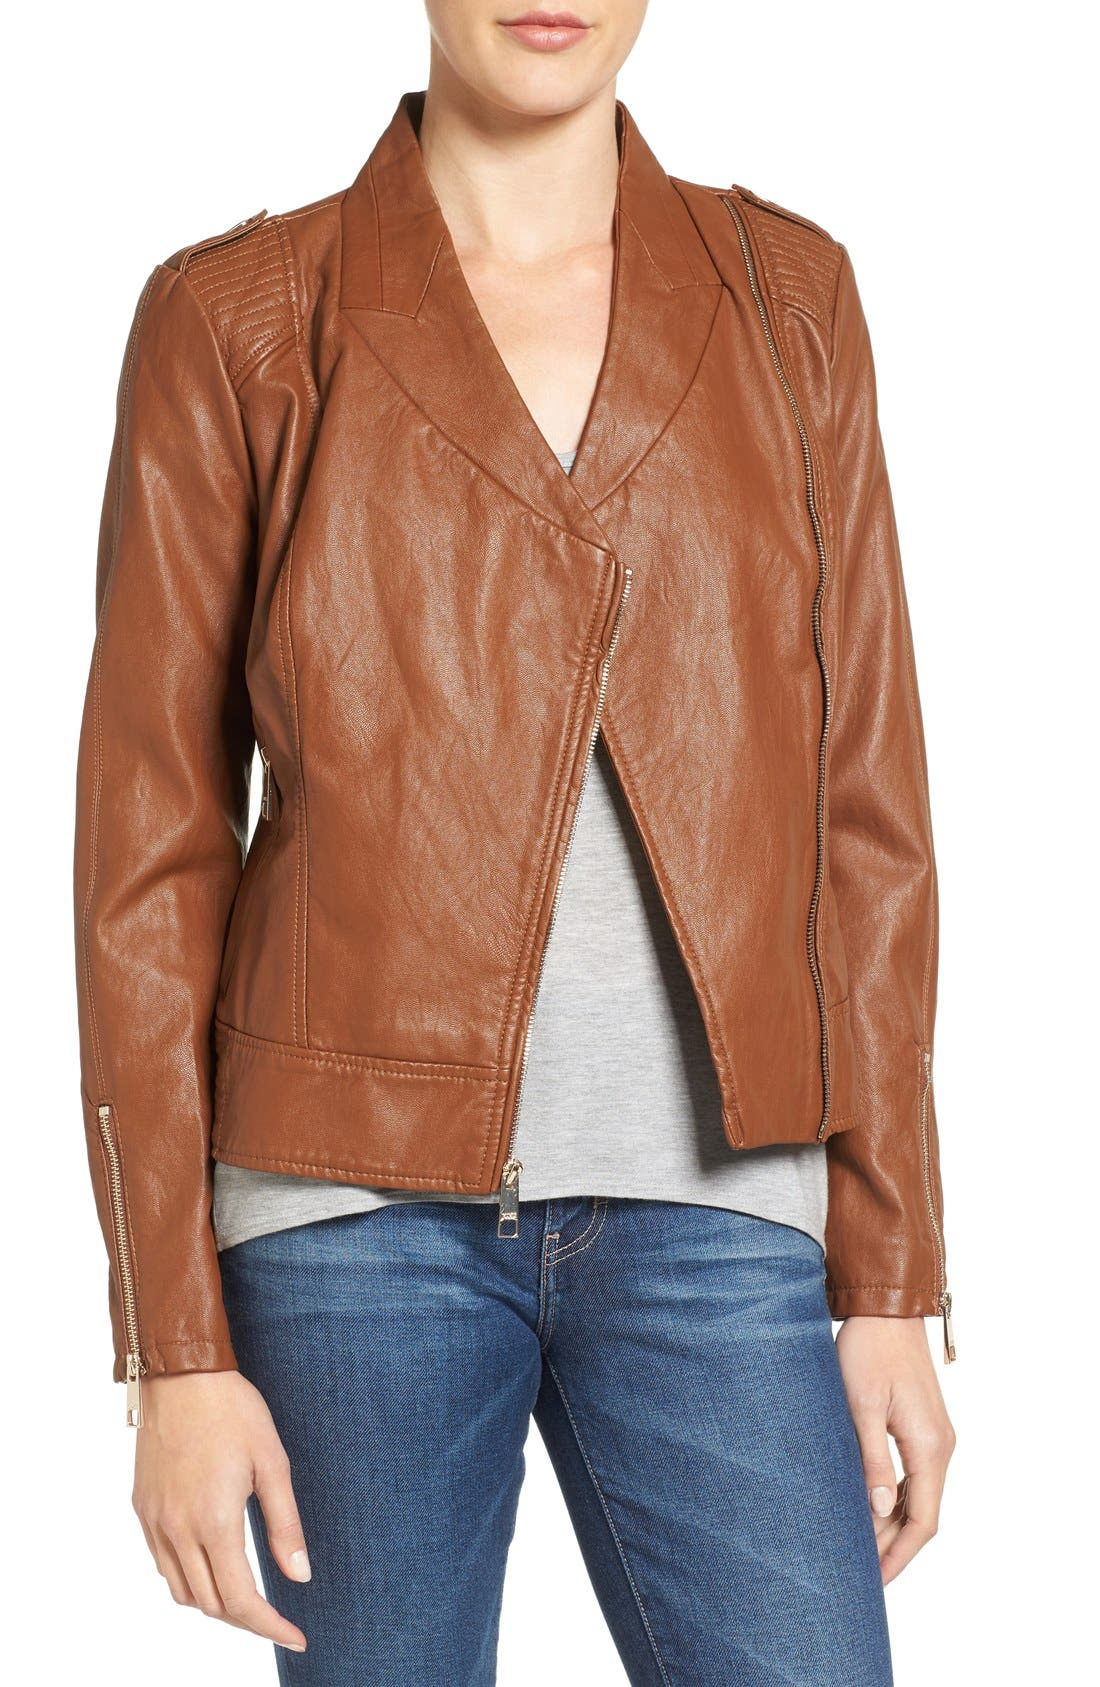 GUESS Faux Leather Moto Jacket (Regular & Petite)